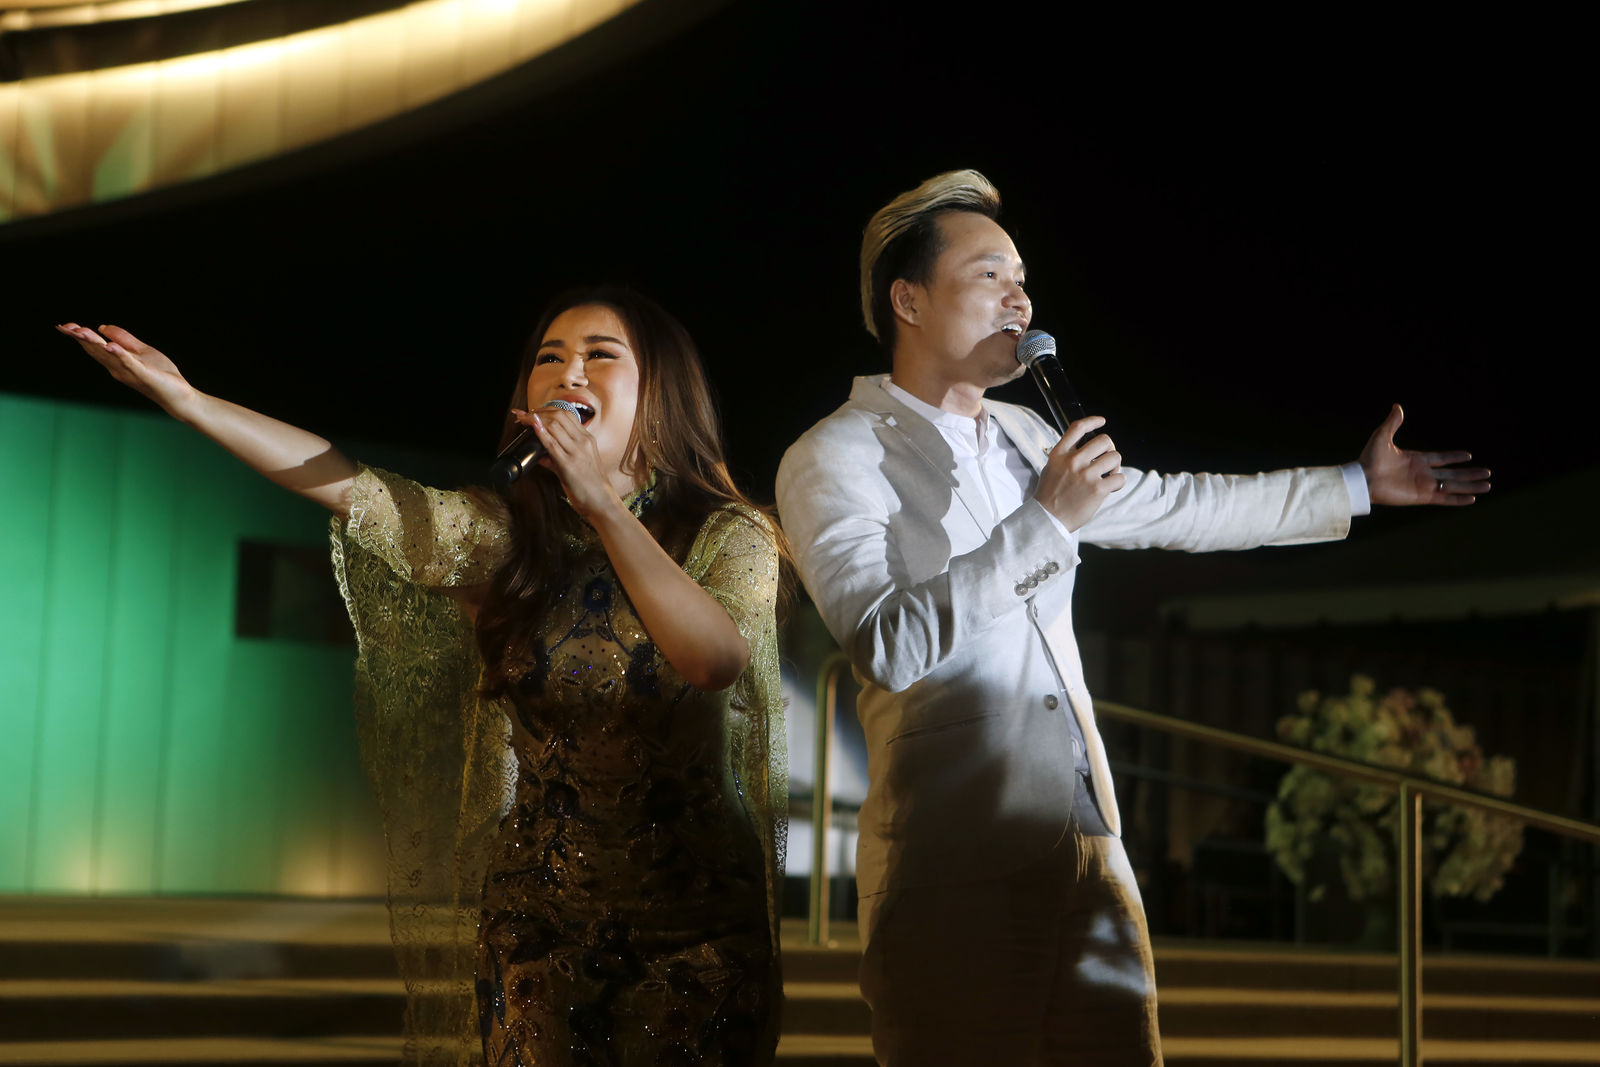 Singers performing during the evening of the Solemn Blessing of the Our Lady of La Vang Shrine. Photo courtesy Diocese of Orange.